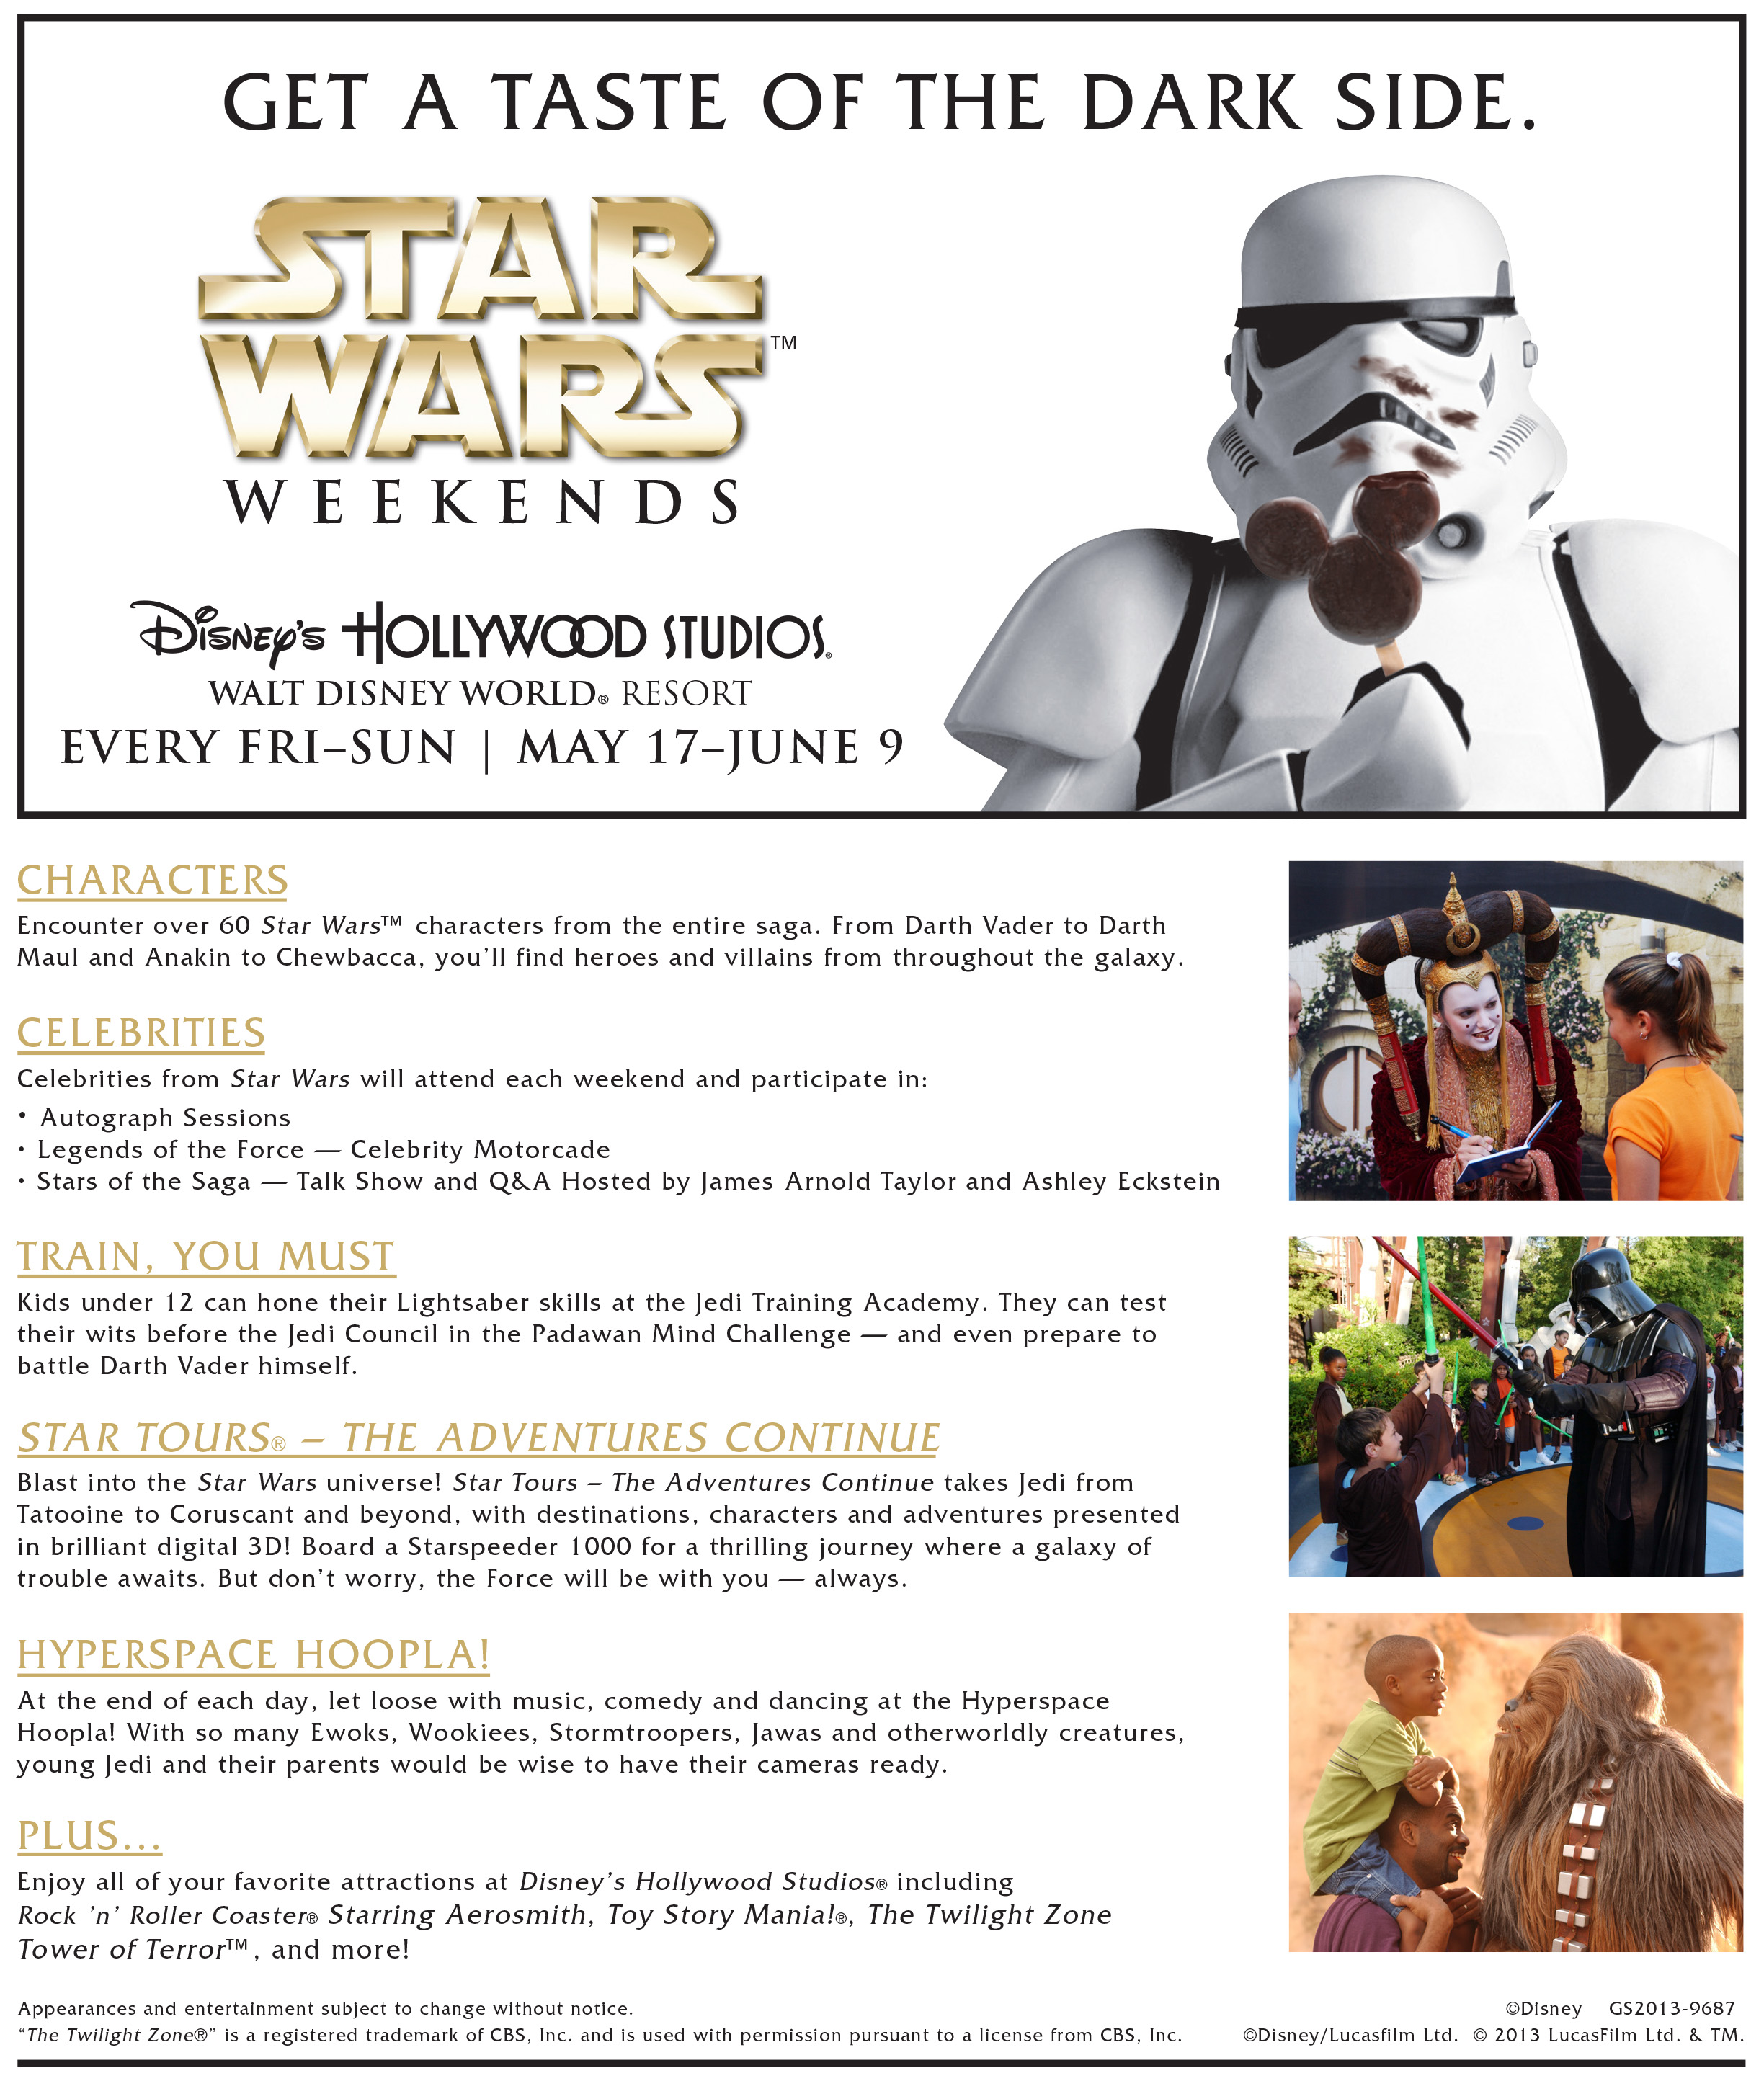 wdw,star wars weekends,Disney's Hollywood Studios,Walt Disney World Resort,Storm Trooper